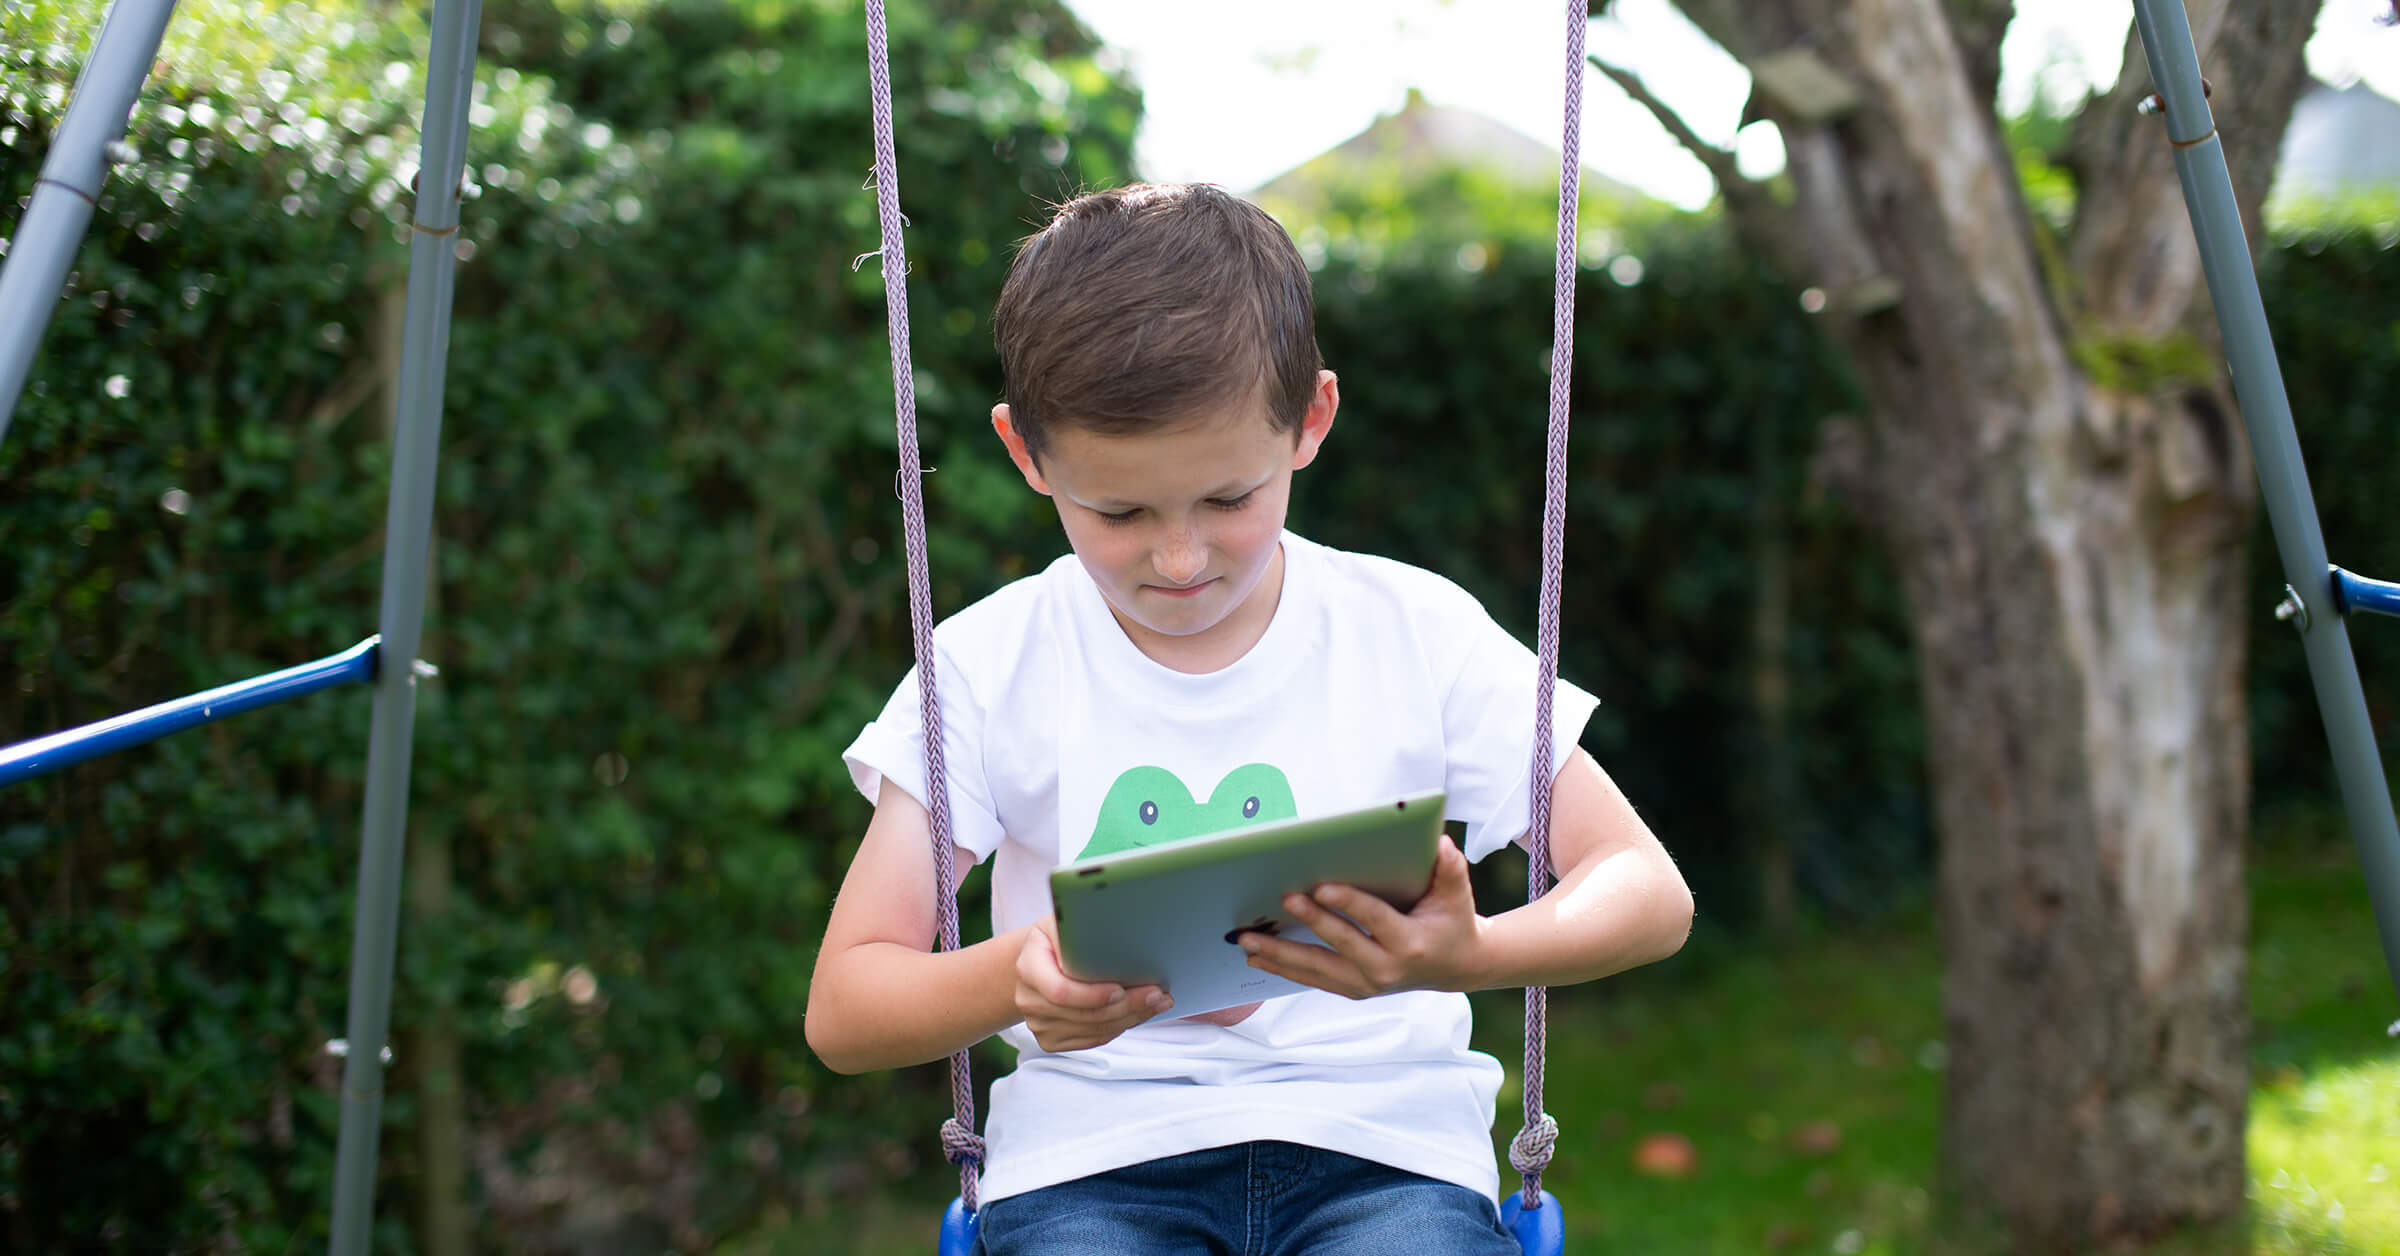 Our bright, friendly, easy-to-use interface is perfect for children